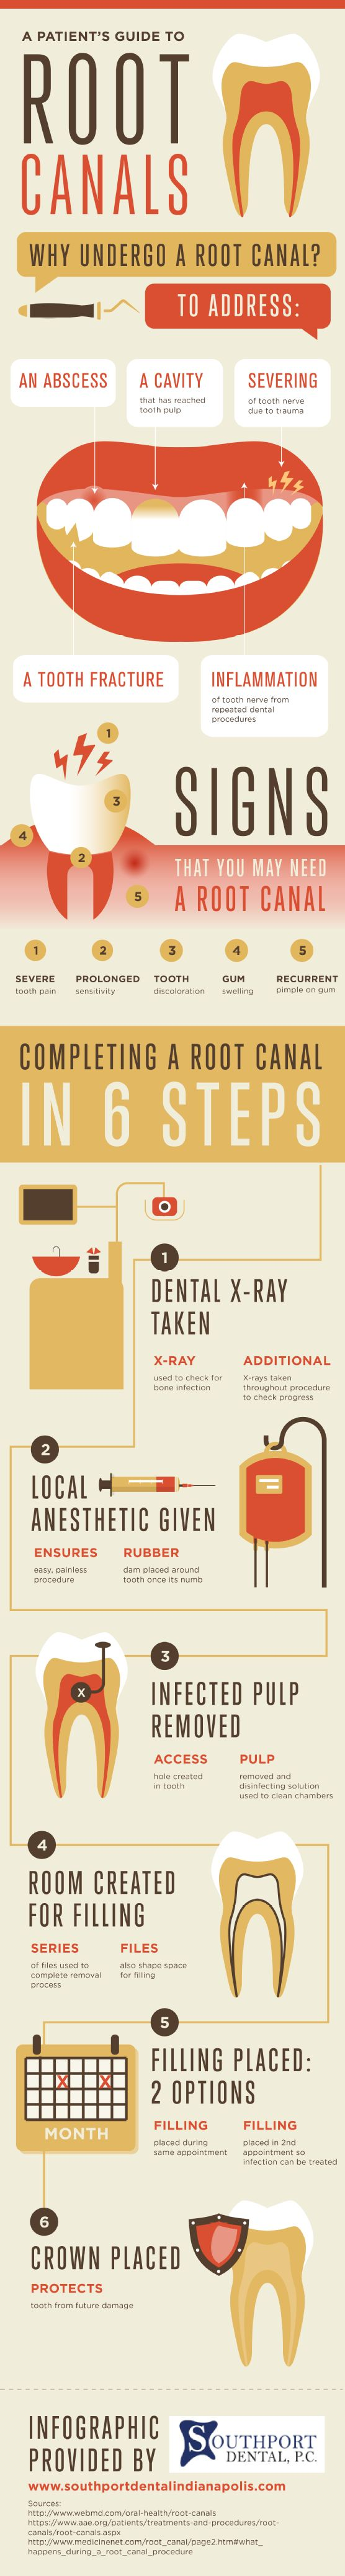 If a tooth's nerve is inflamed after repeated dental procedures, root canal treatment may be necessary to provide relief. Get more details about root canal treatment by clicking over to this infographic from a dentist in Indianapolis.